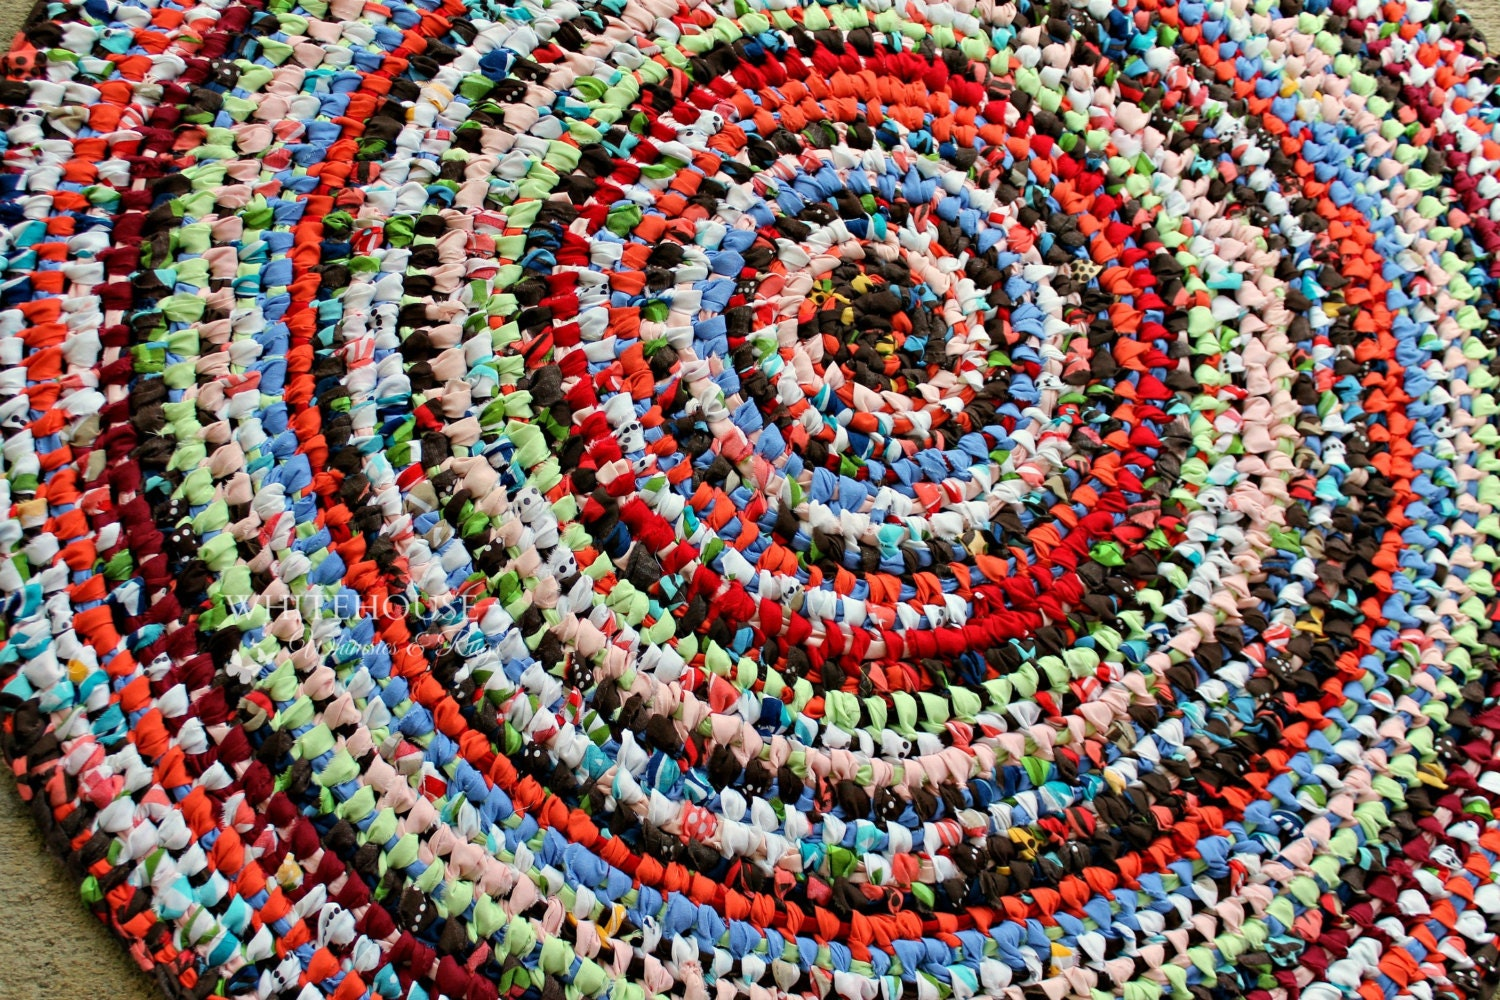 37 Round Amish Knot Rag Rug Toothbrush Rug Multi Color